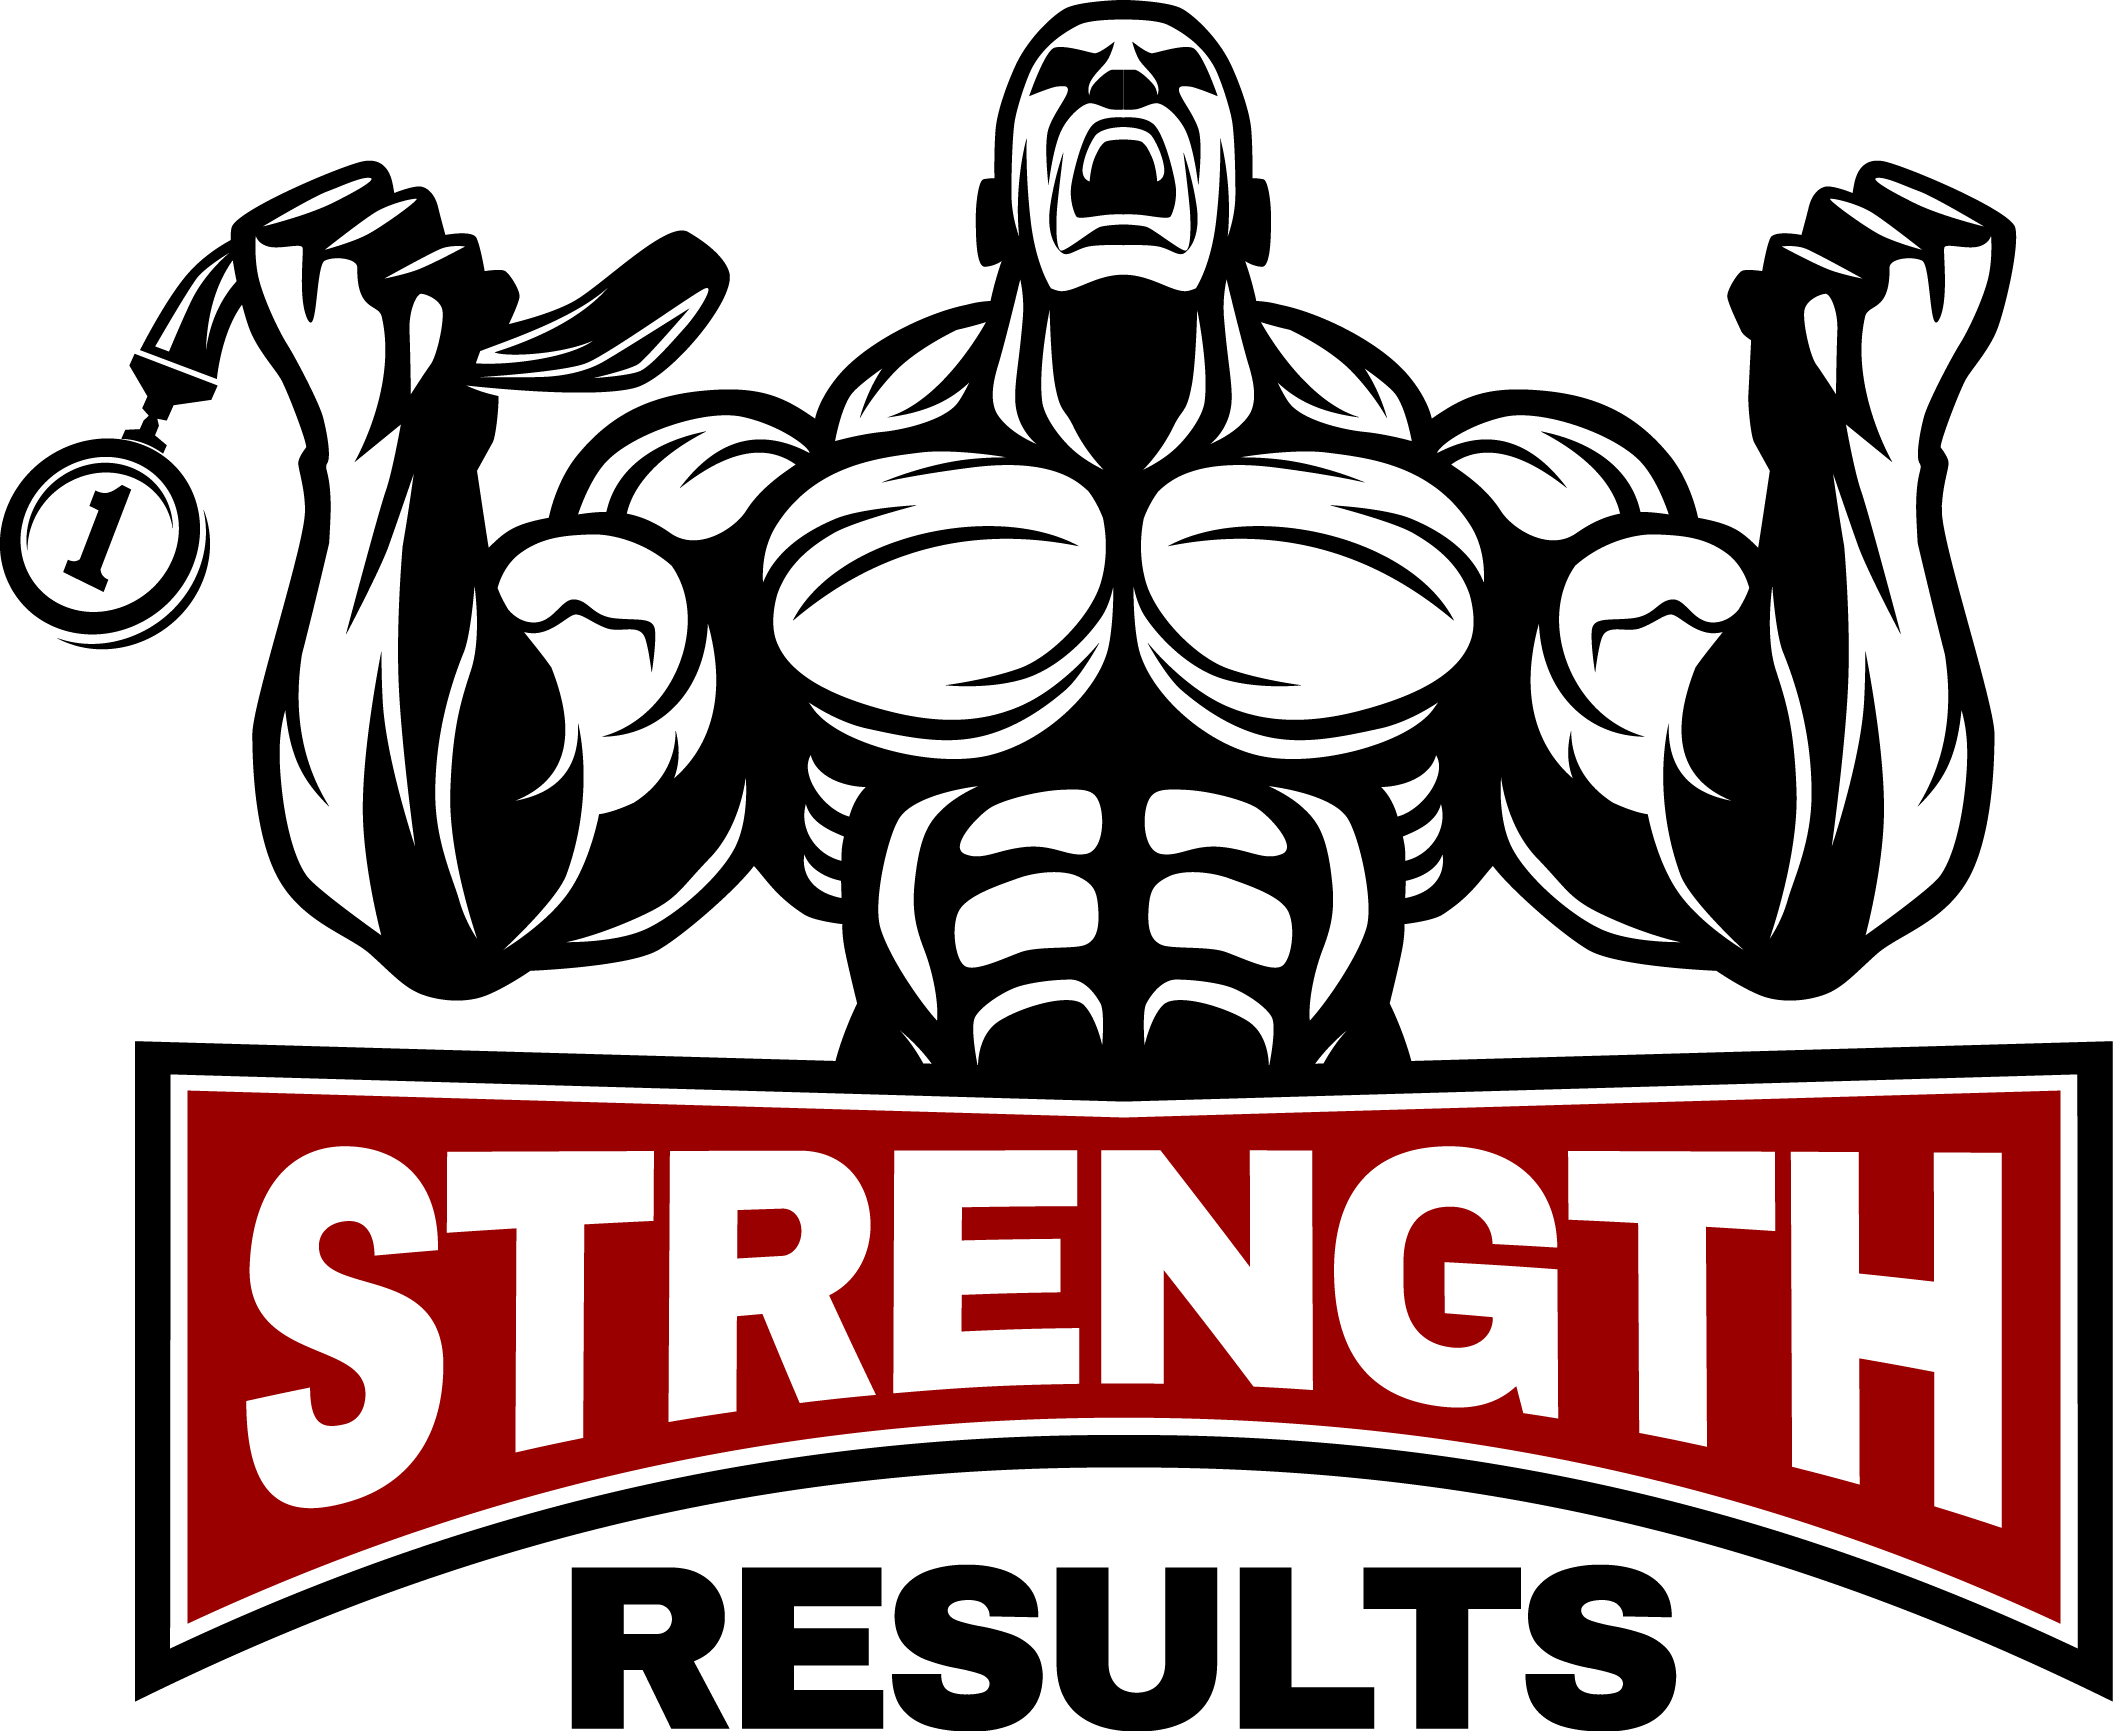 Create powerful logo for a strength results site